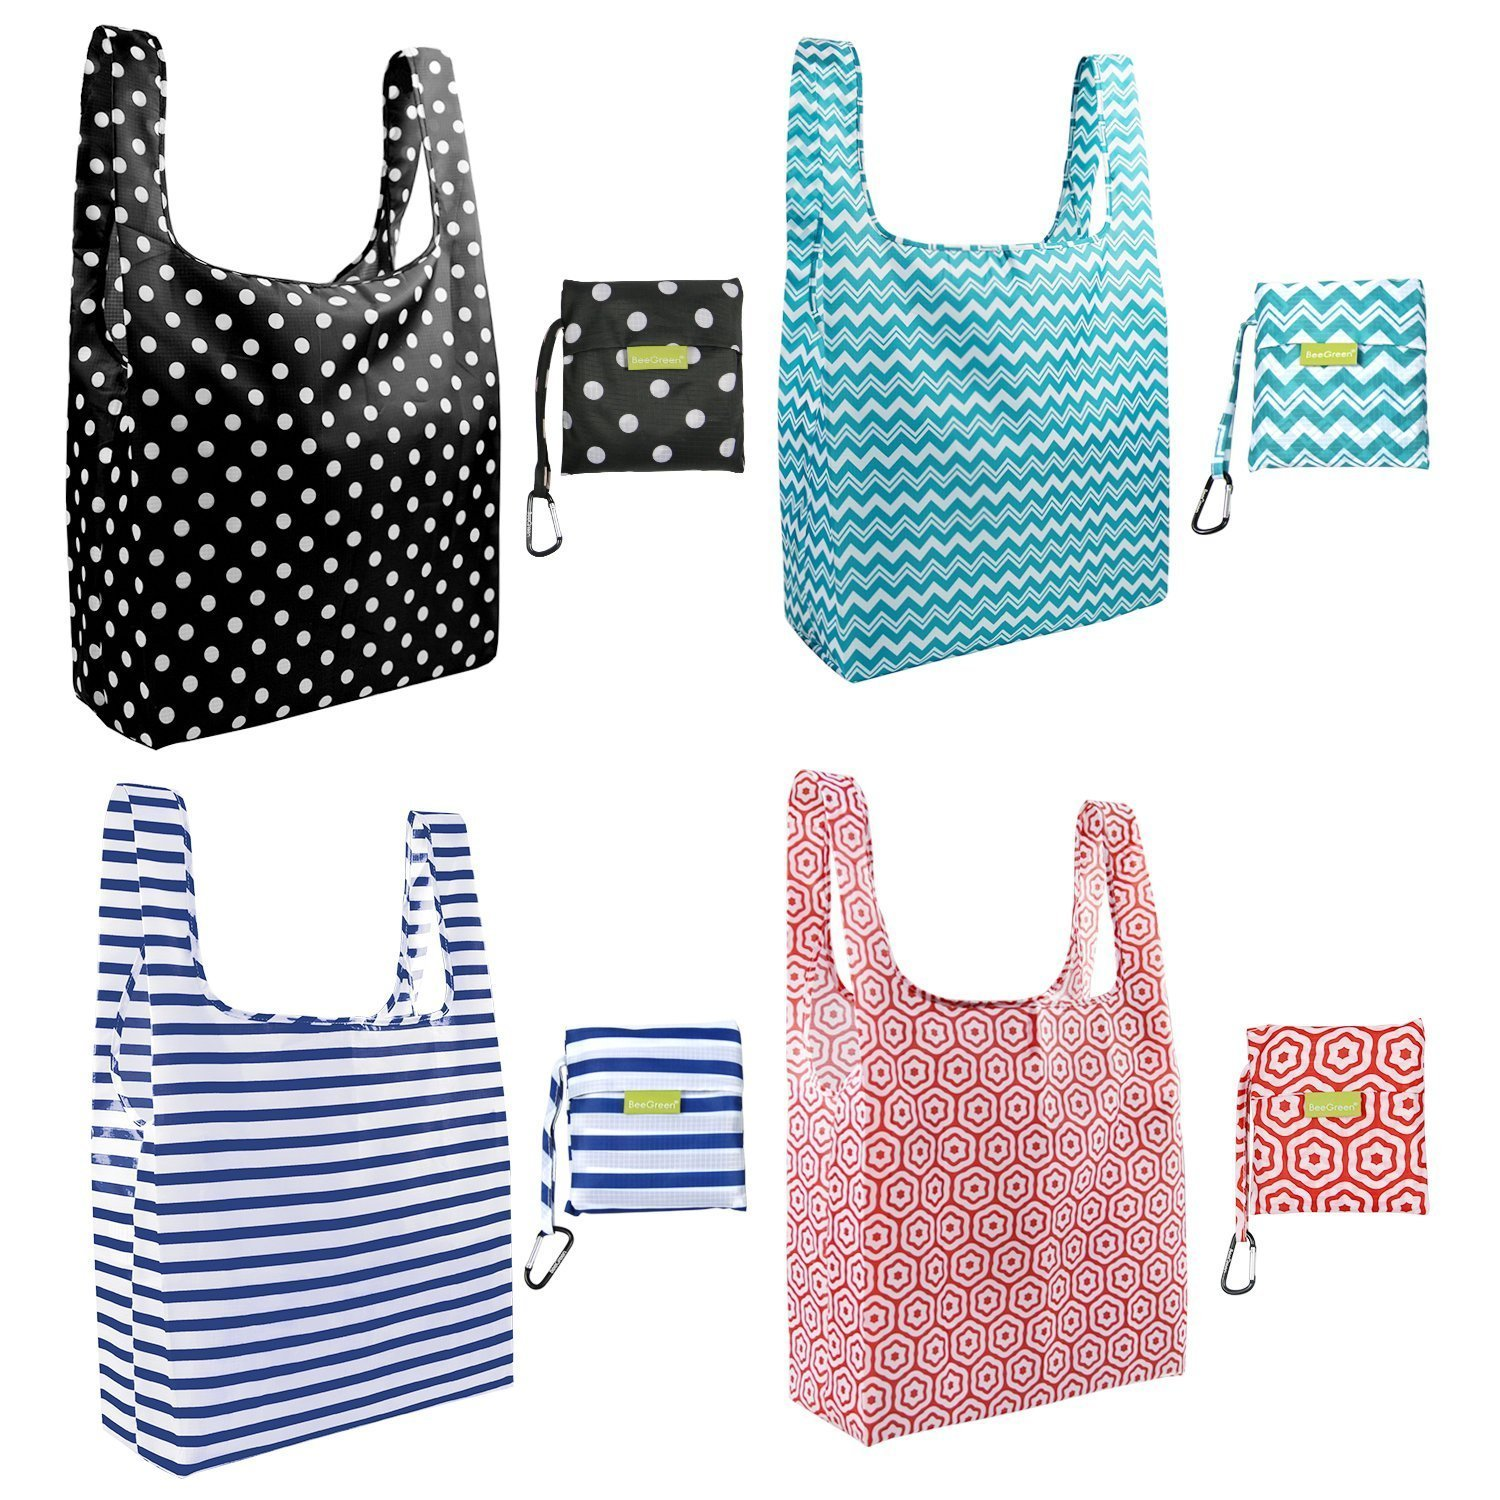 BeeGreen_Basic_Foldable_Reusable_Grocery_Bags_with_Improved_Pouch_4_Geometric_Patterns_2048x.jpg